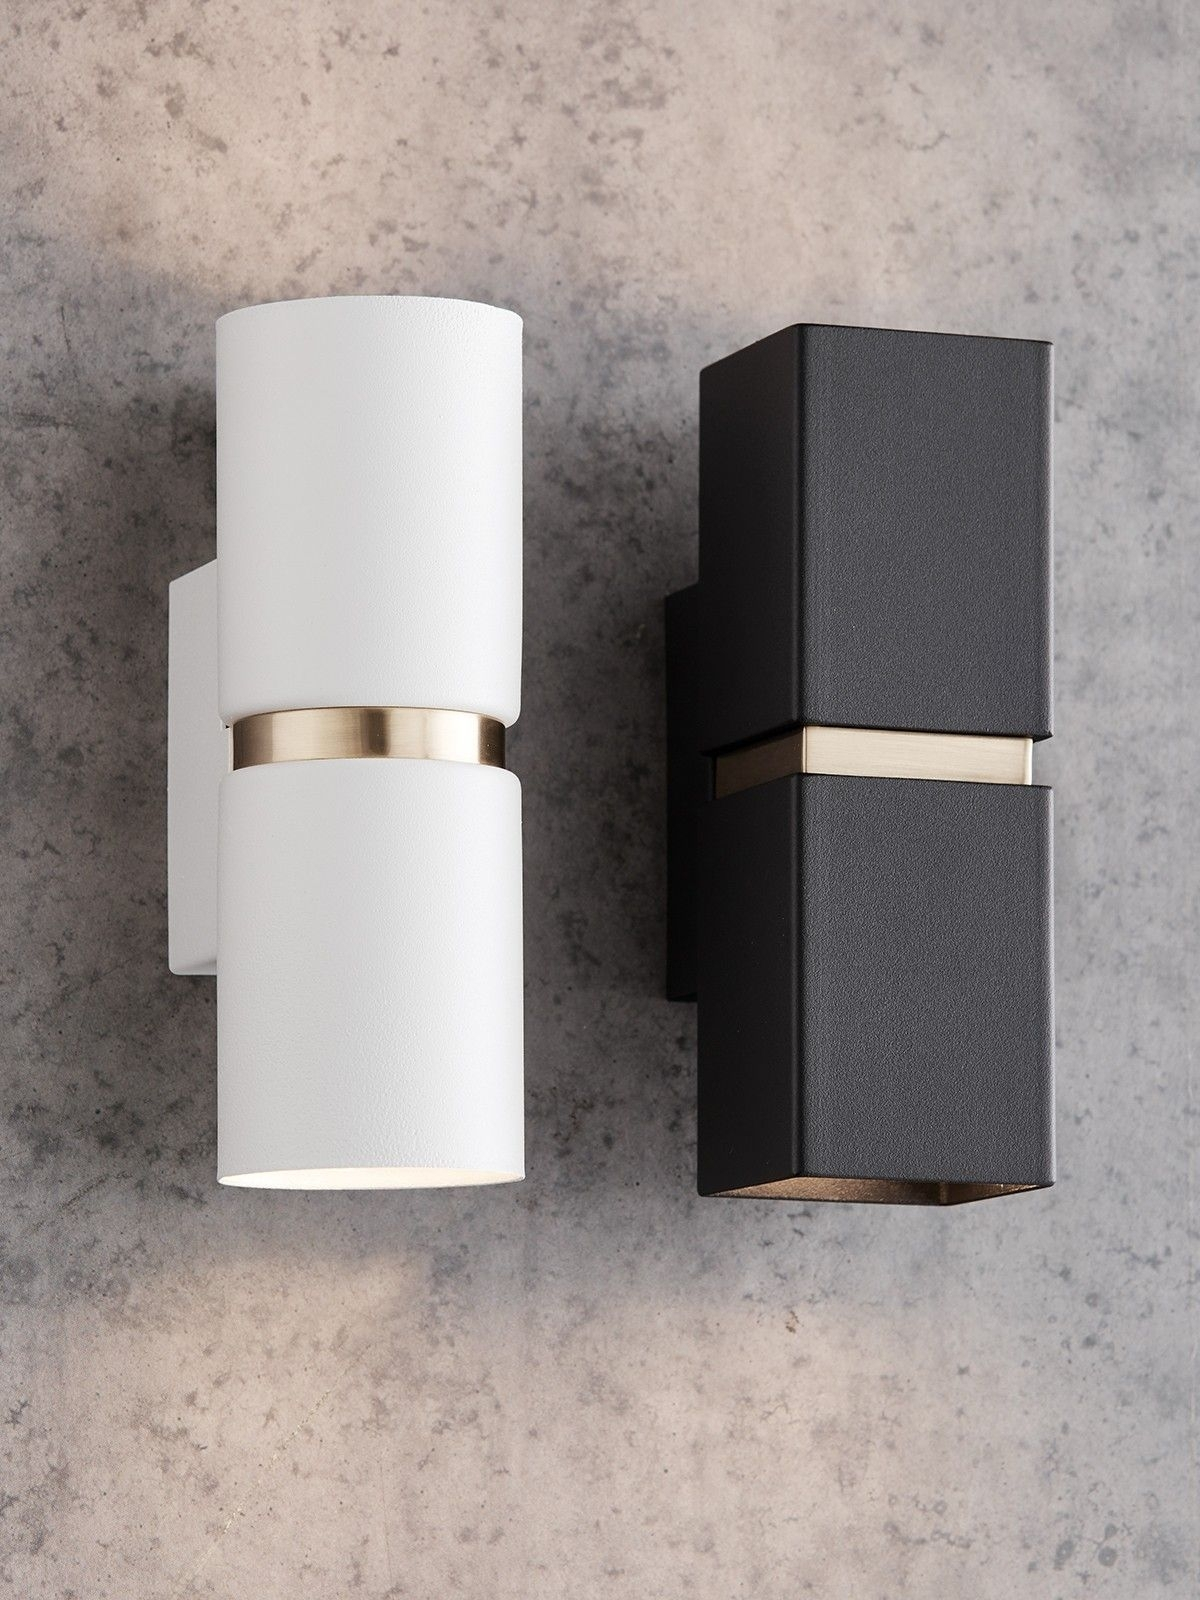 Baristo 2 Light Up/down Round Wall Bracket In White/brass | Powder regarding Beacon Outdoor Wall Lighting (Image 2 of 10)